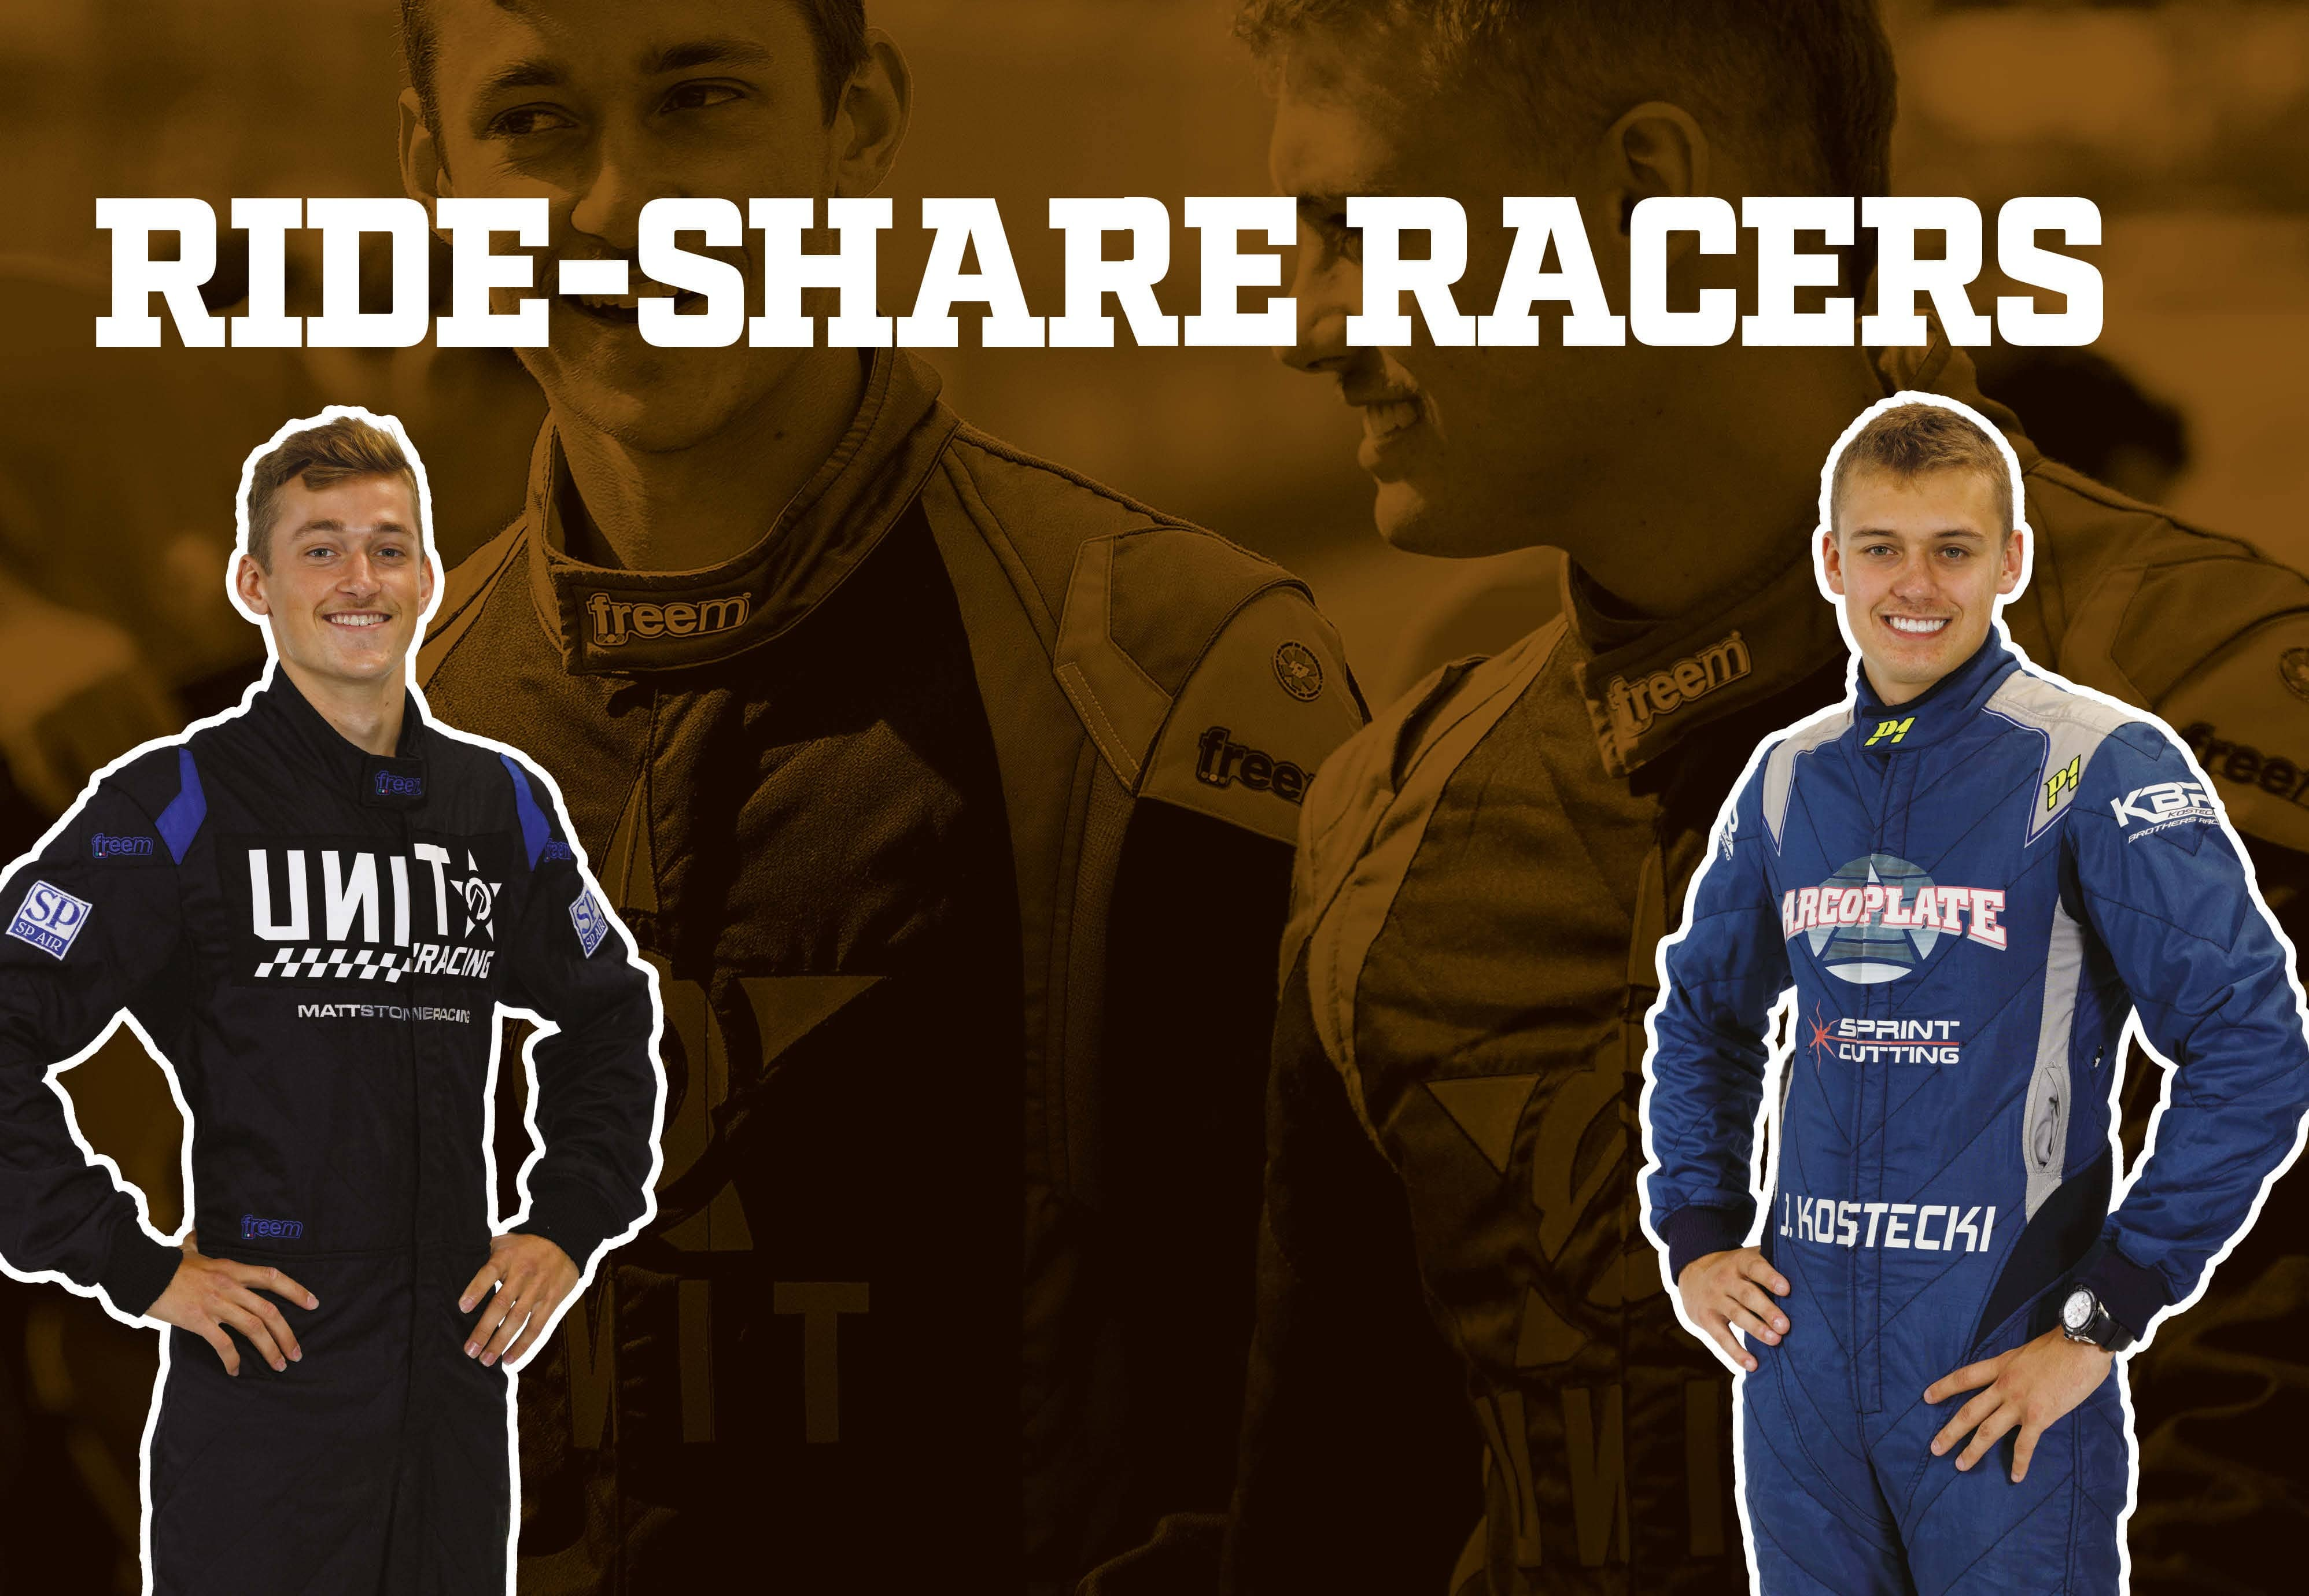 Ride-Share Racers